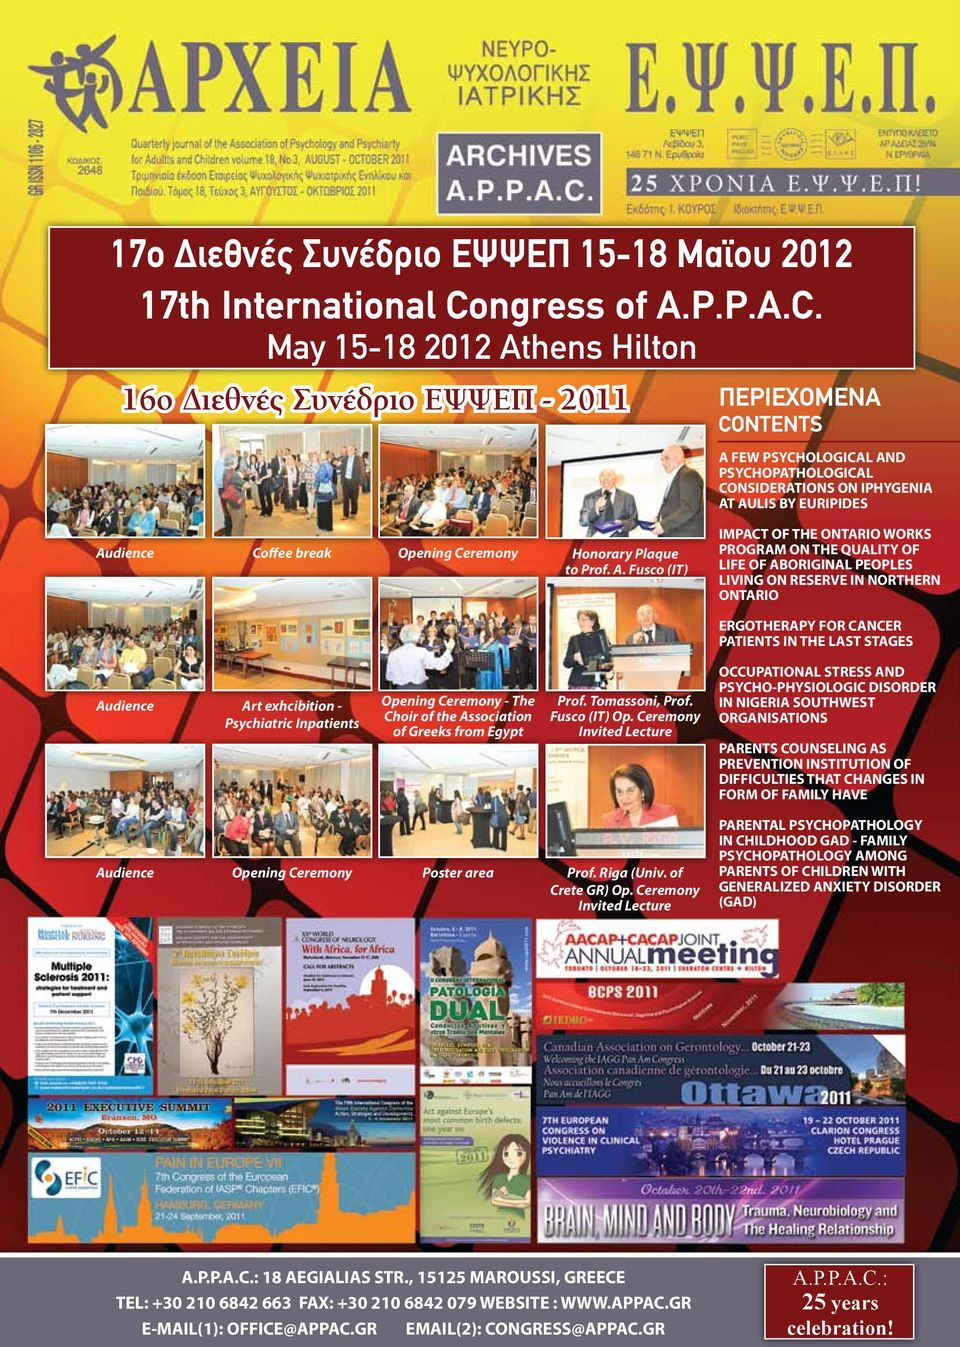 May 15-18 2012 Athens Hilton 16ο Διεθνές Συνέδριο ΕΨΨΕΠ - 2011 ΠΕΡΙΕΧΟΜΕΝΑ CONTENTS A FEW PSYCHOLOGICAL AND PSYCHOPATHOLOGICAL CONSIDERATIONS ON IPHYGENIA AT AULIS BY EURIPIDES Audience Coffee break